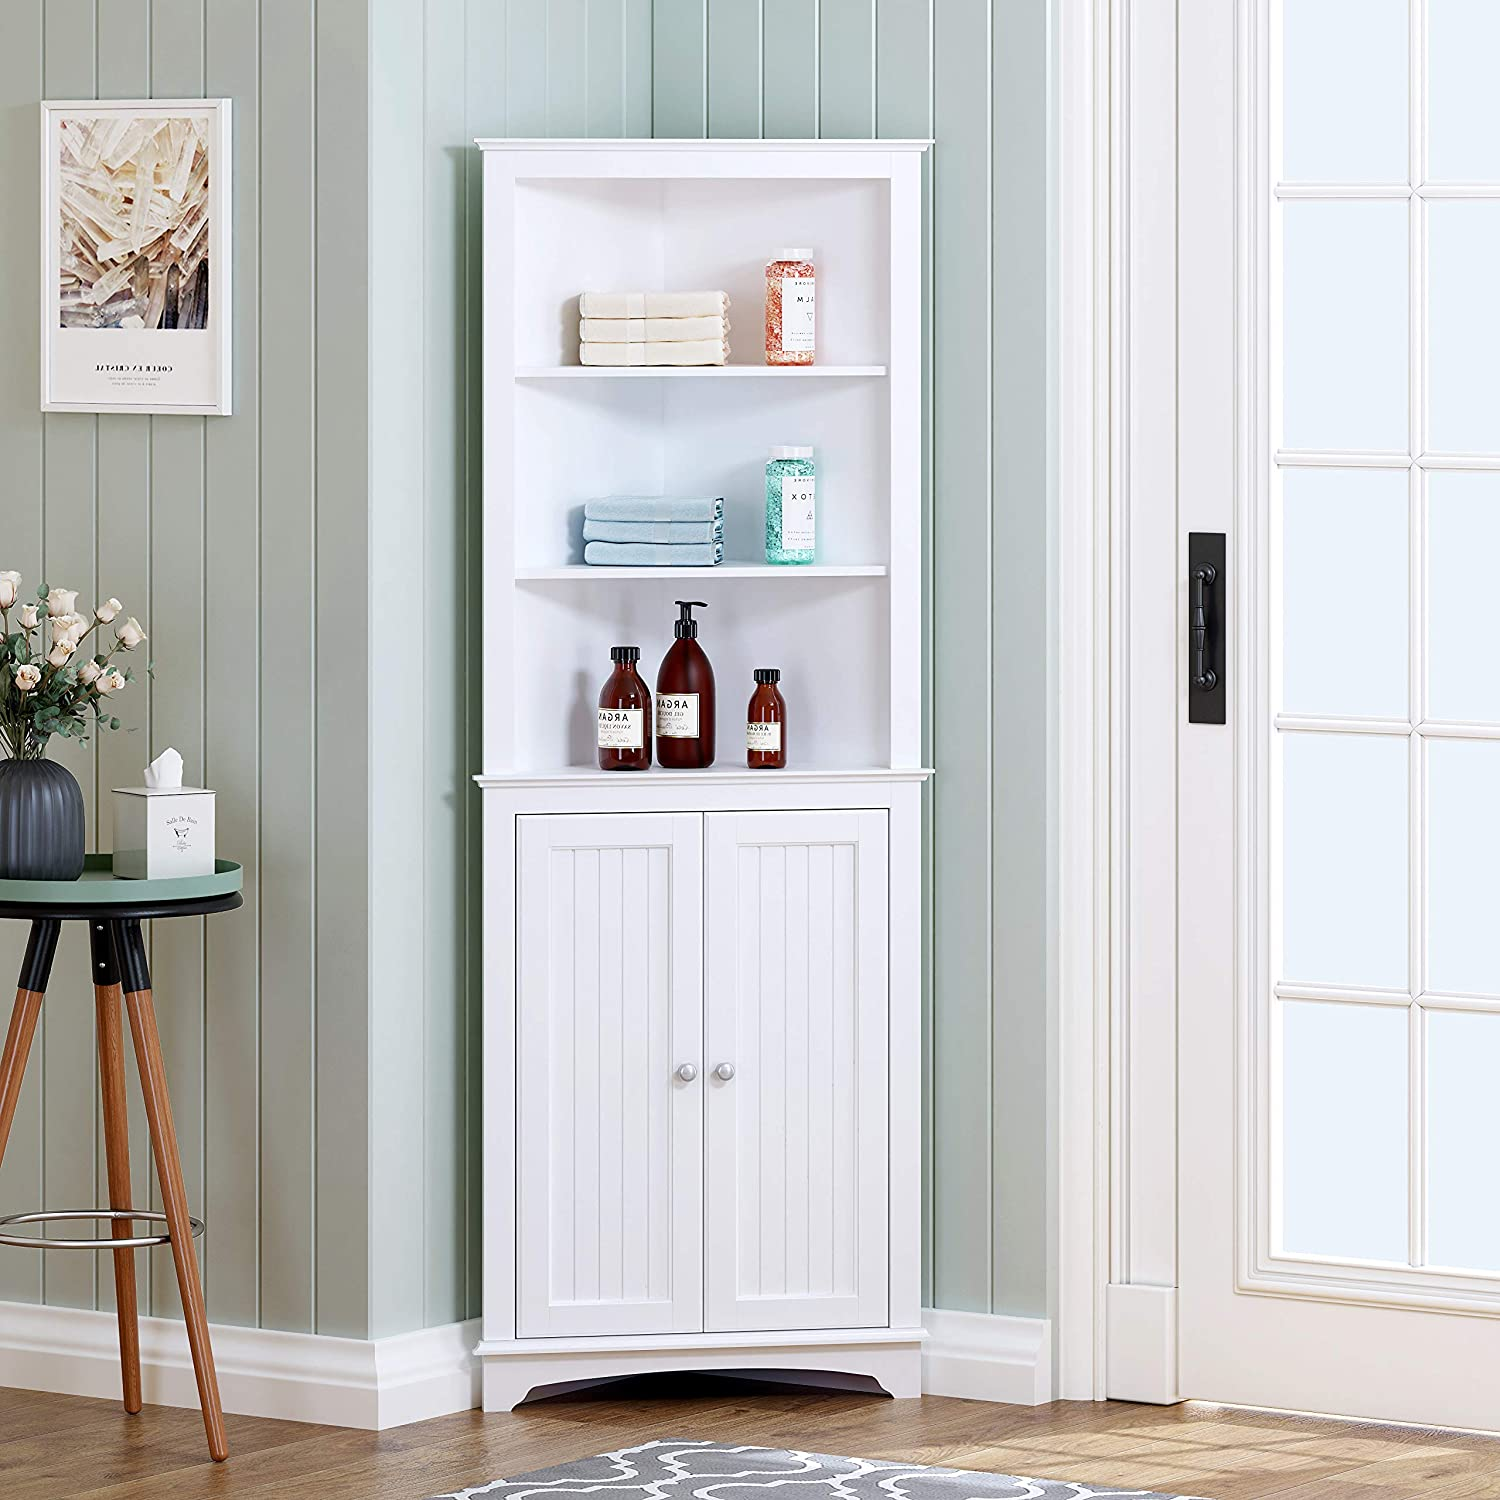 Spirich Home Tall Corner Cabinet with Two Doors and Three Tier Shelves,  Free Standing Corner Storage Cabinet for Bathroom, Kitchen, Living Room or